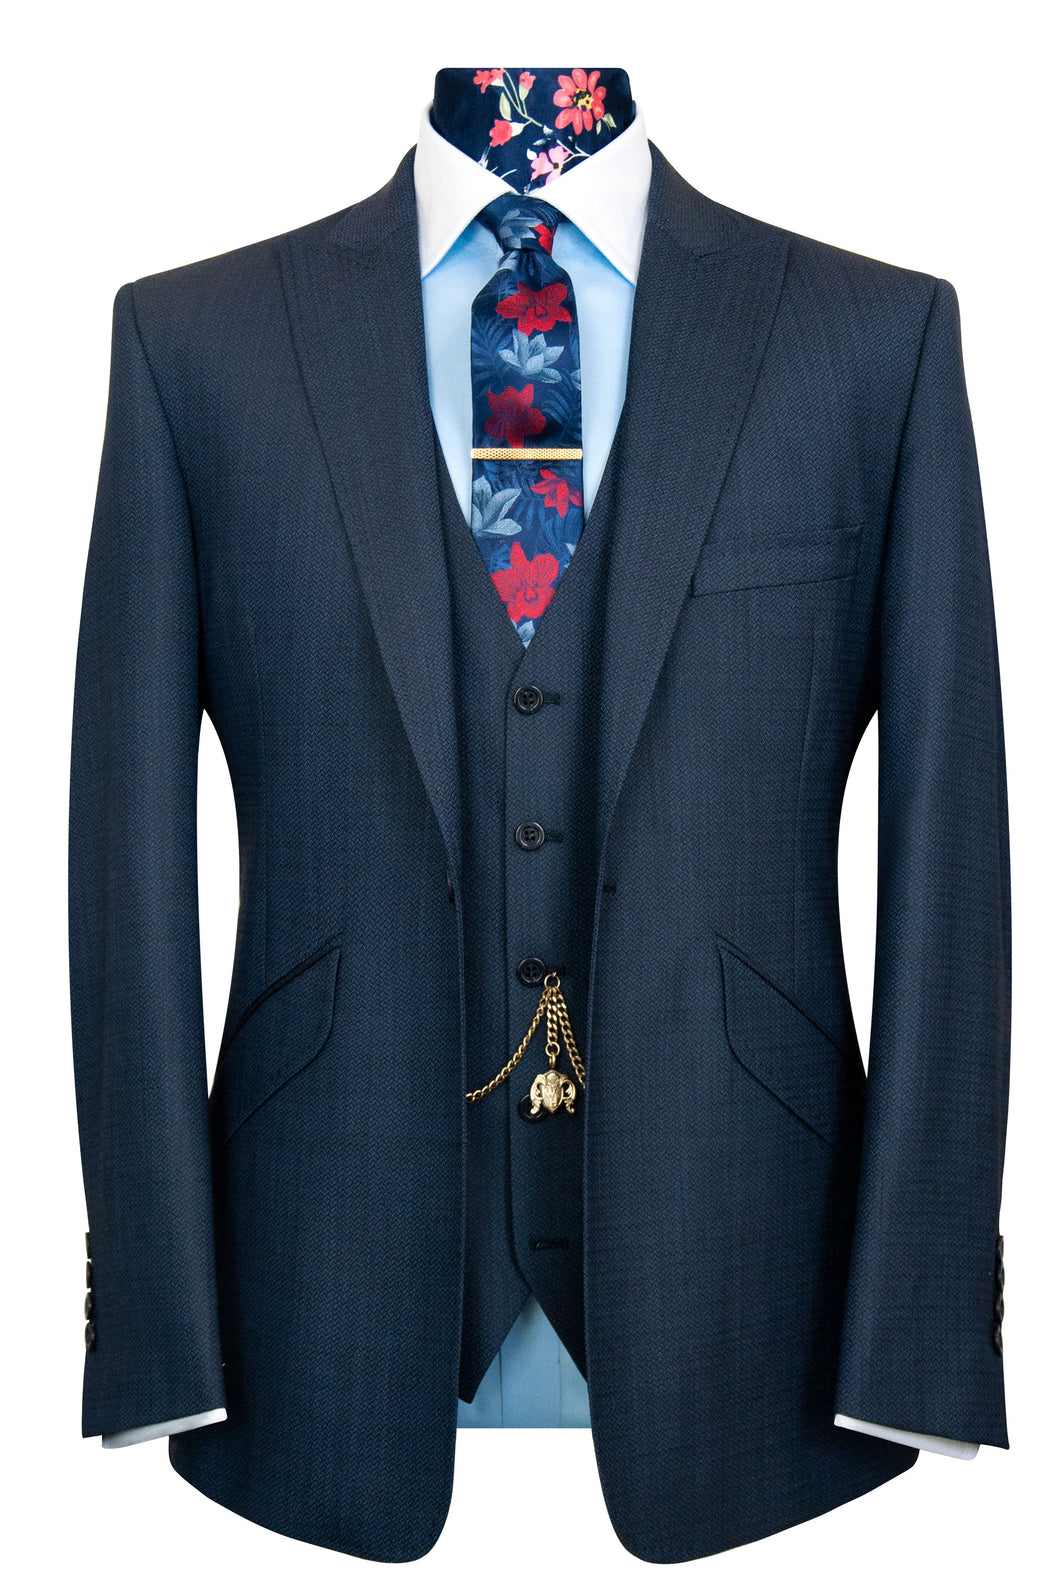 William Hunt Savile Row | The Dryden Oxford Blue Chevron Weave Suit